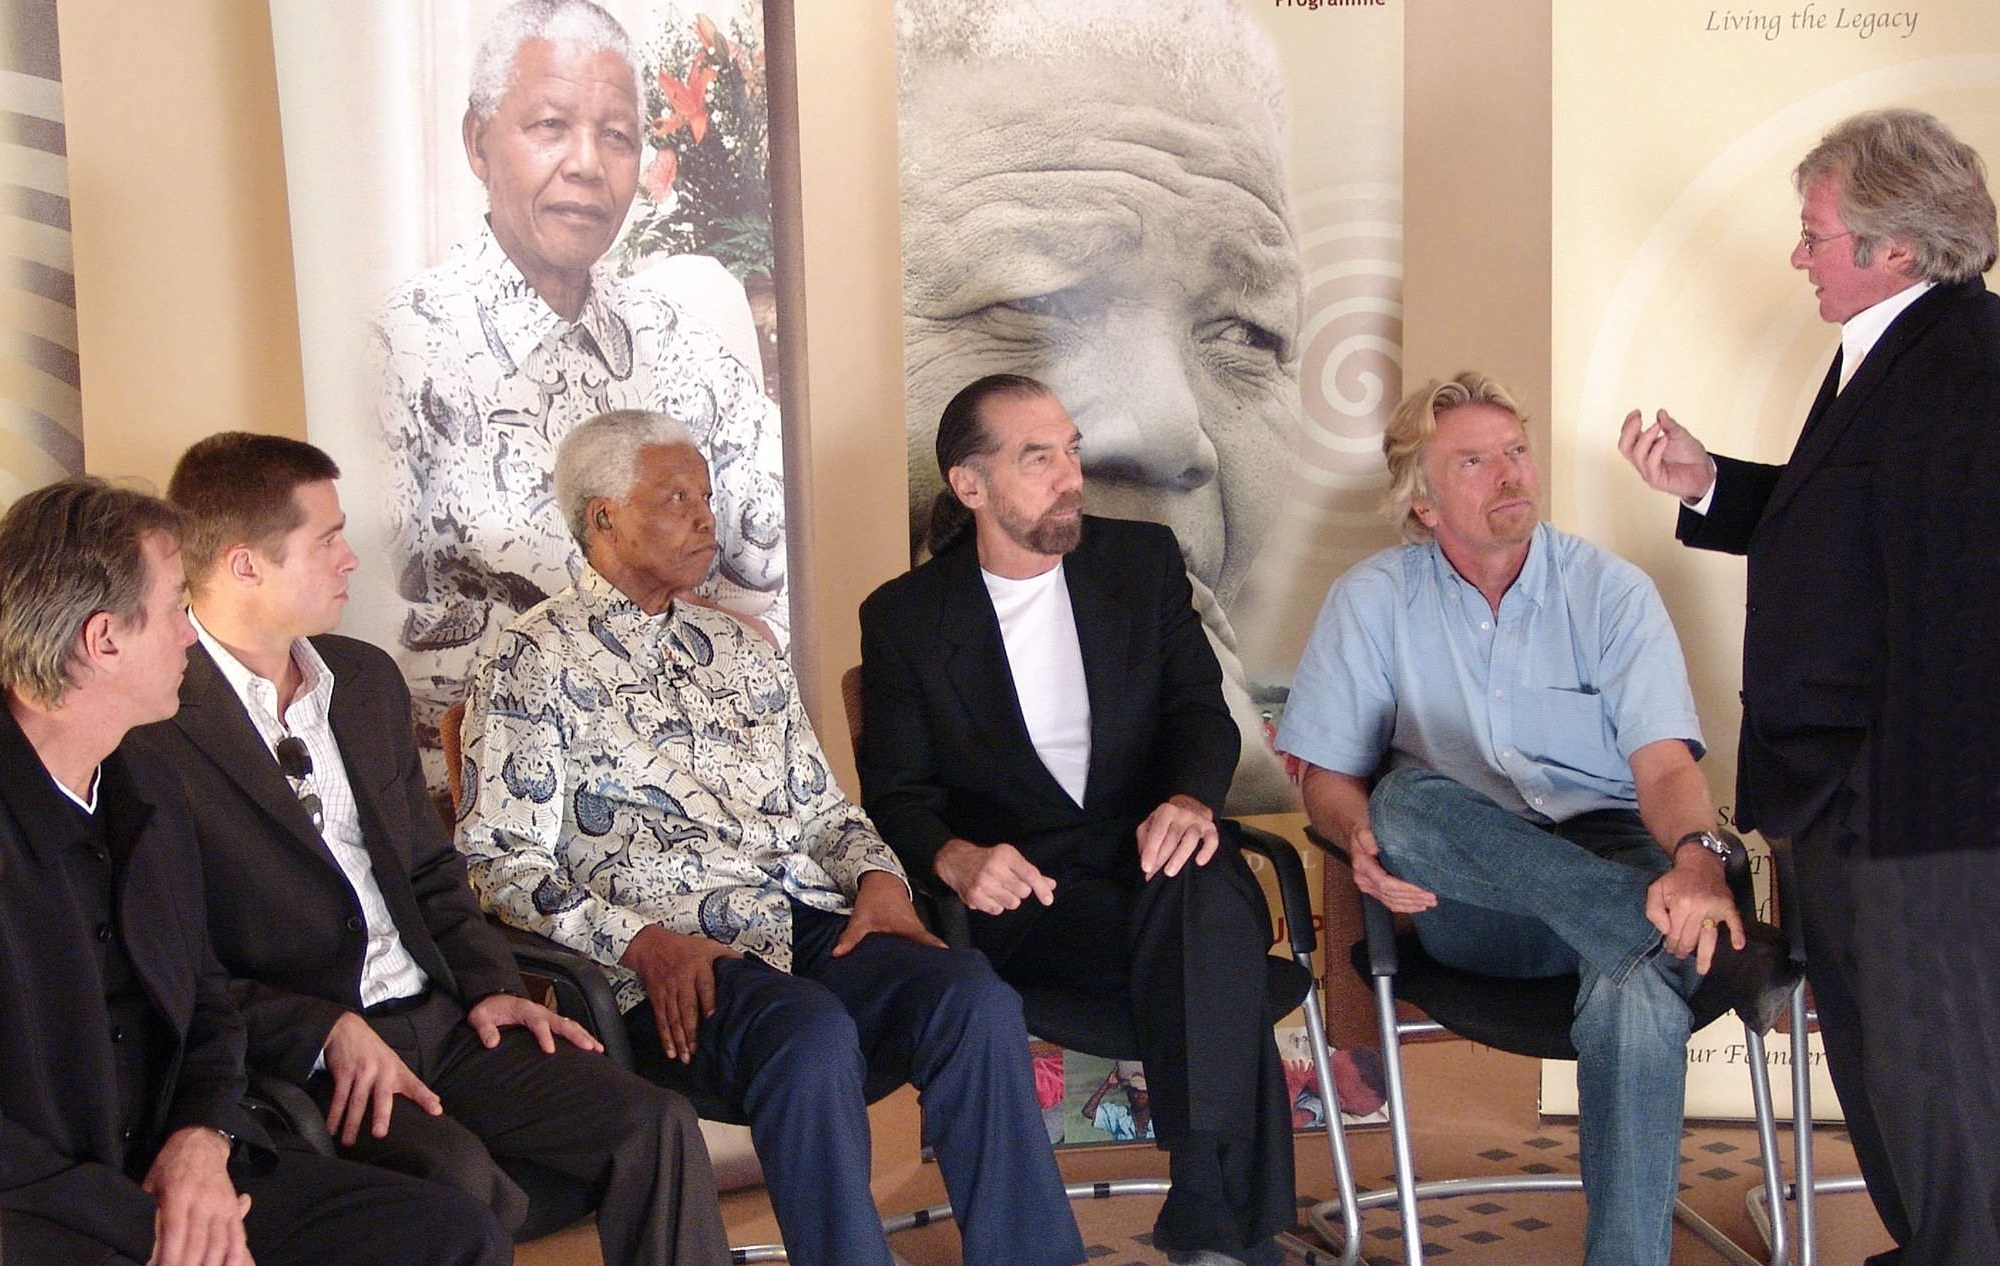 Left to right: Allan Oberholzer, Brad Pitt, Nelson Mandela, John Paul DeJoria, Sir Richard Branson and Mike Kendrick